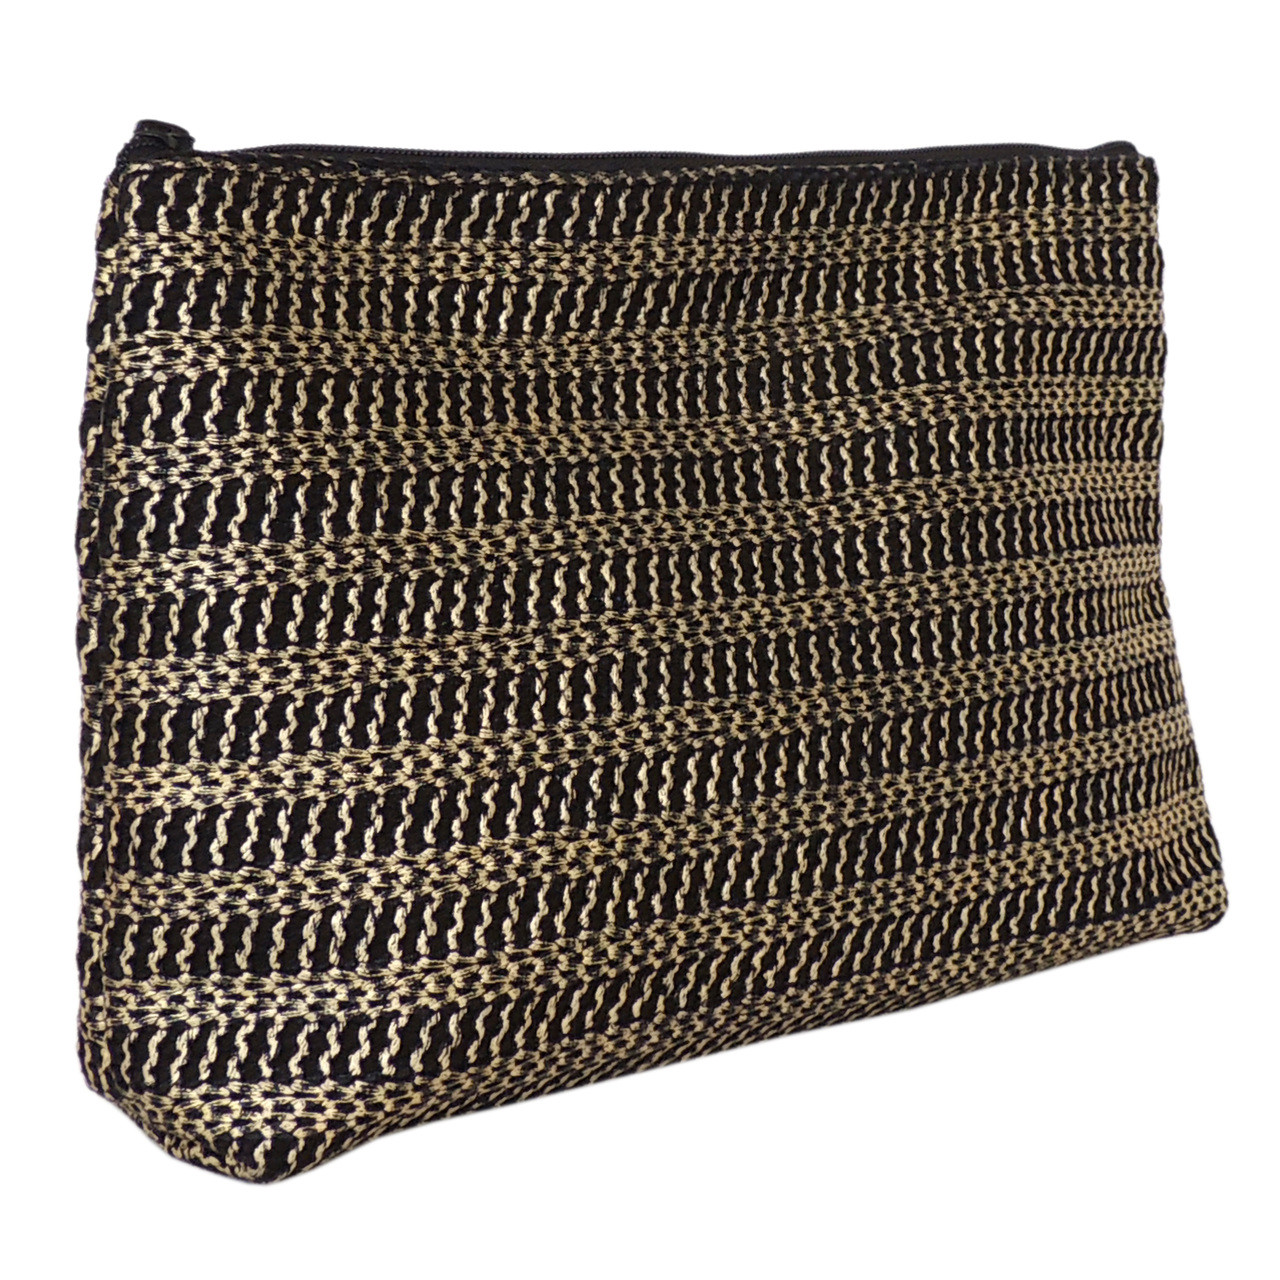 Carryall Clutch in Gold Woven